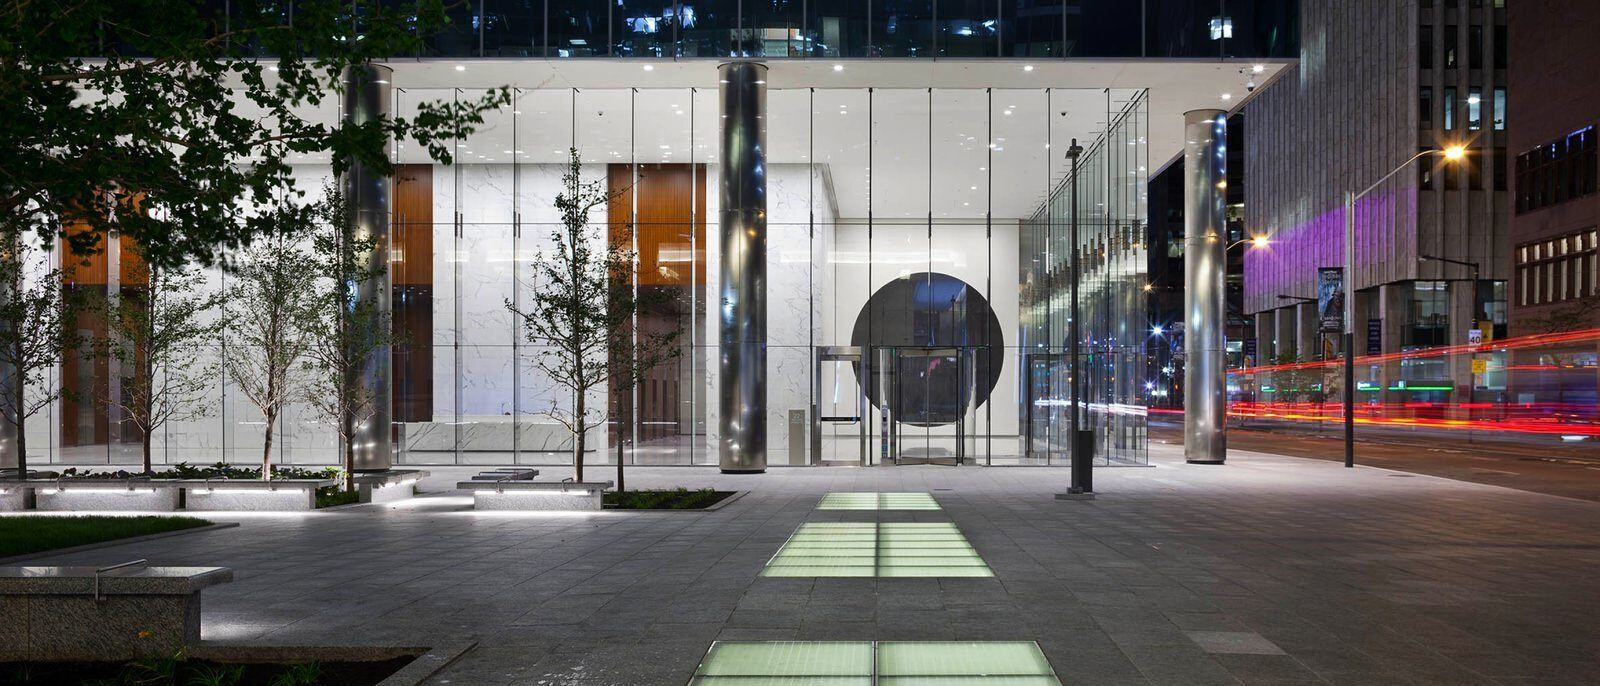 Exterior view of the lobby from the street, which is visible through large, glass windows.